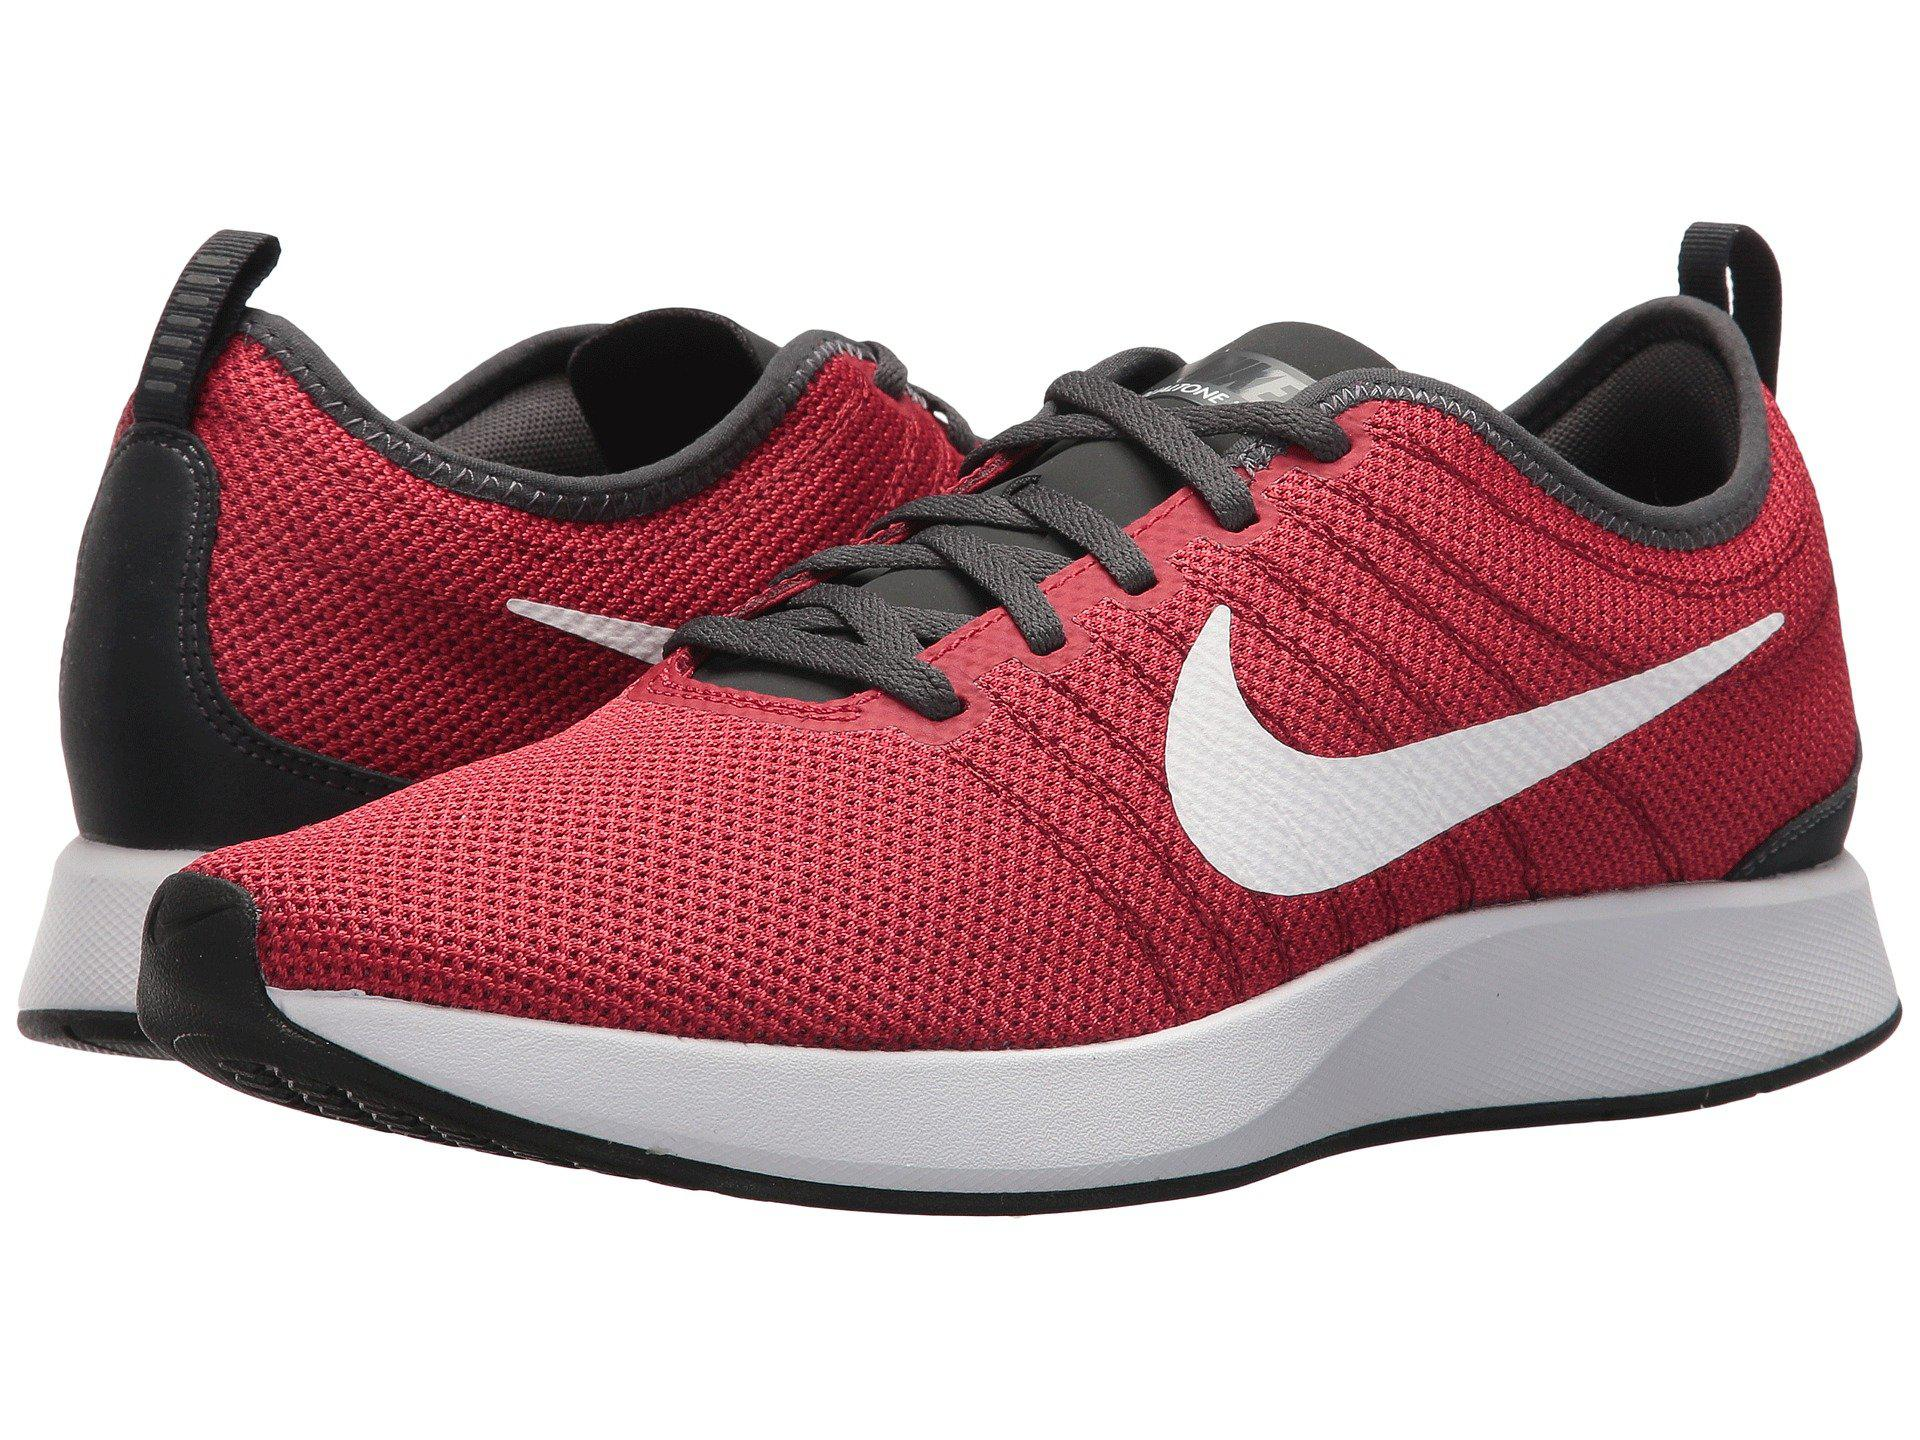 7a7752ac5285 Lyst - Nike Dualtone Racer in Red for Men - Save 33%